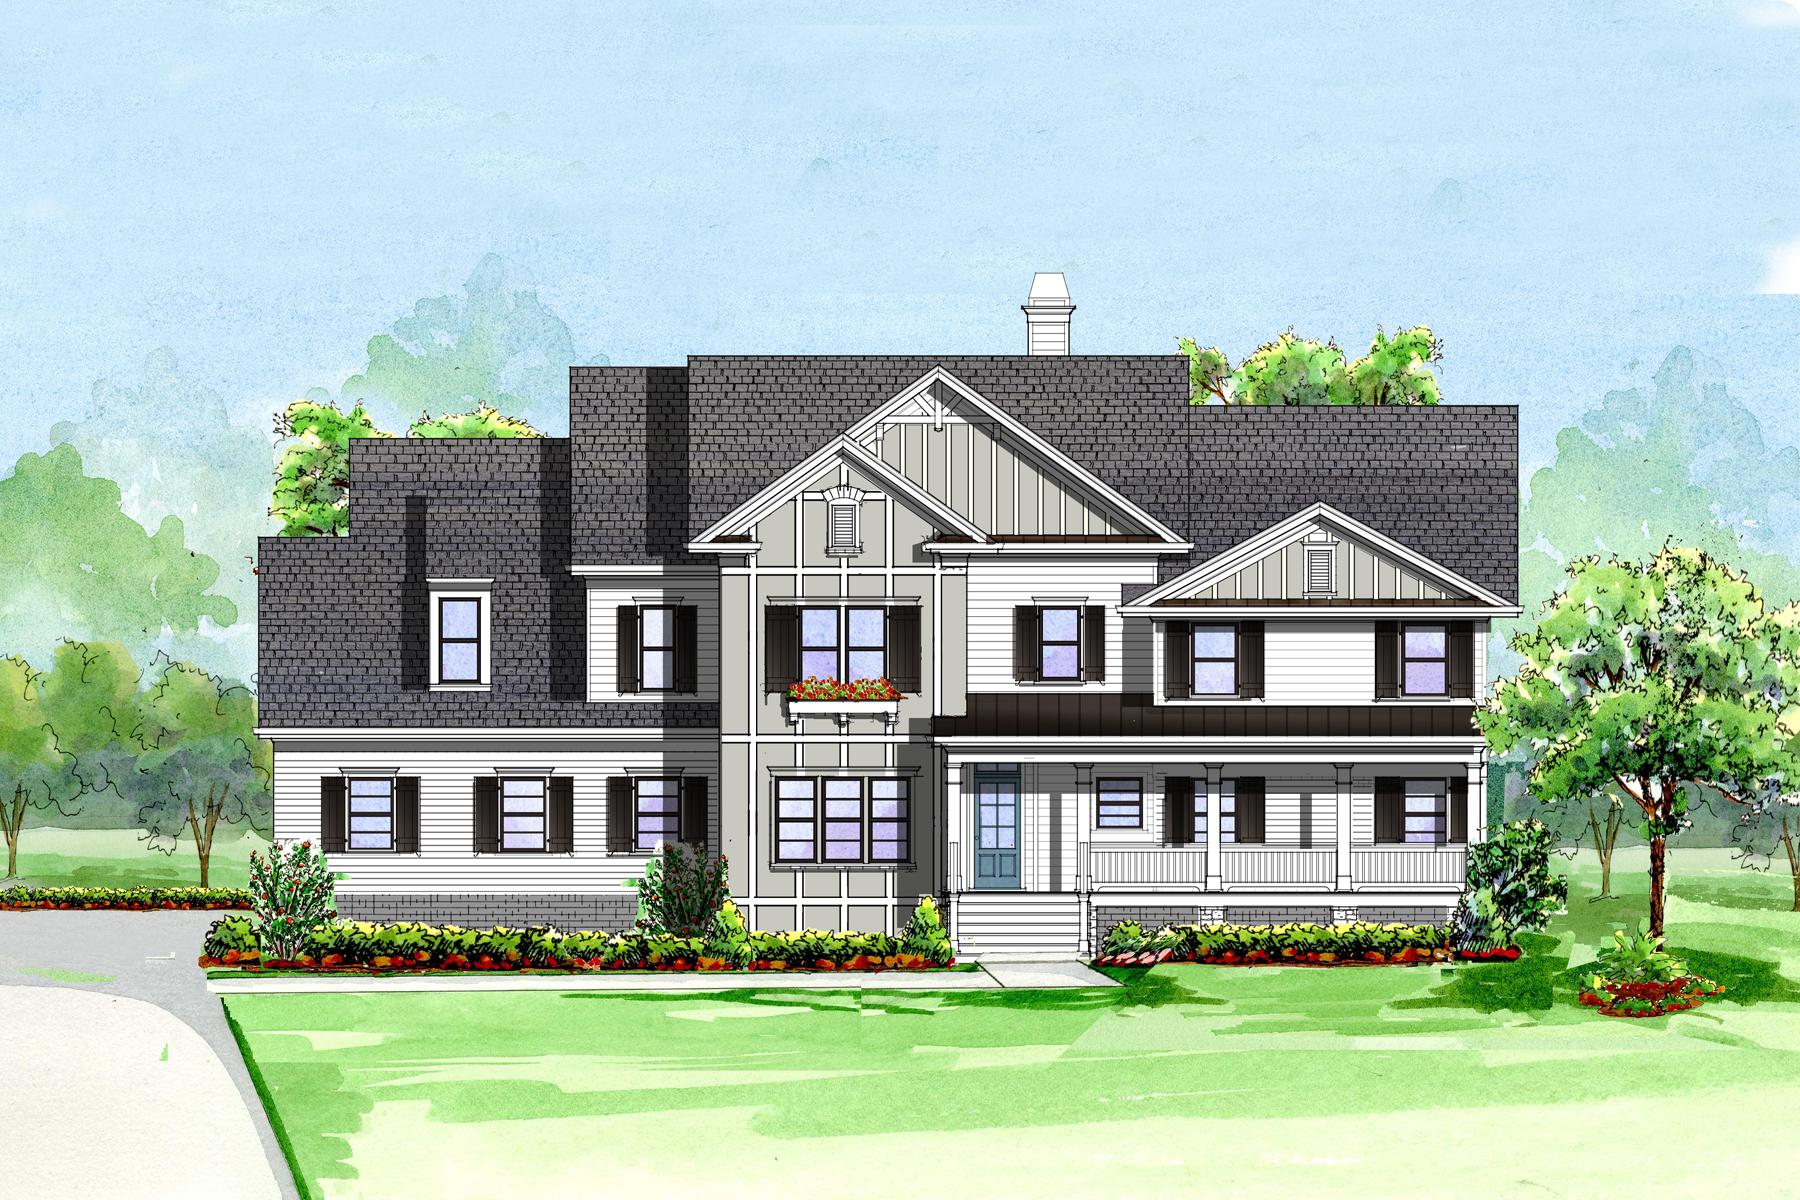 Single Family Home for Sale at Beautiful New Construction In Heards Ferry 6510 Bridgewood Valley Road Sandy Springs, Georgia, 30328 United States